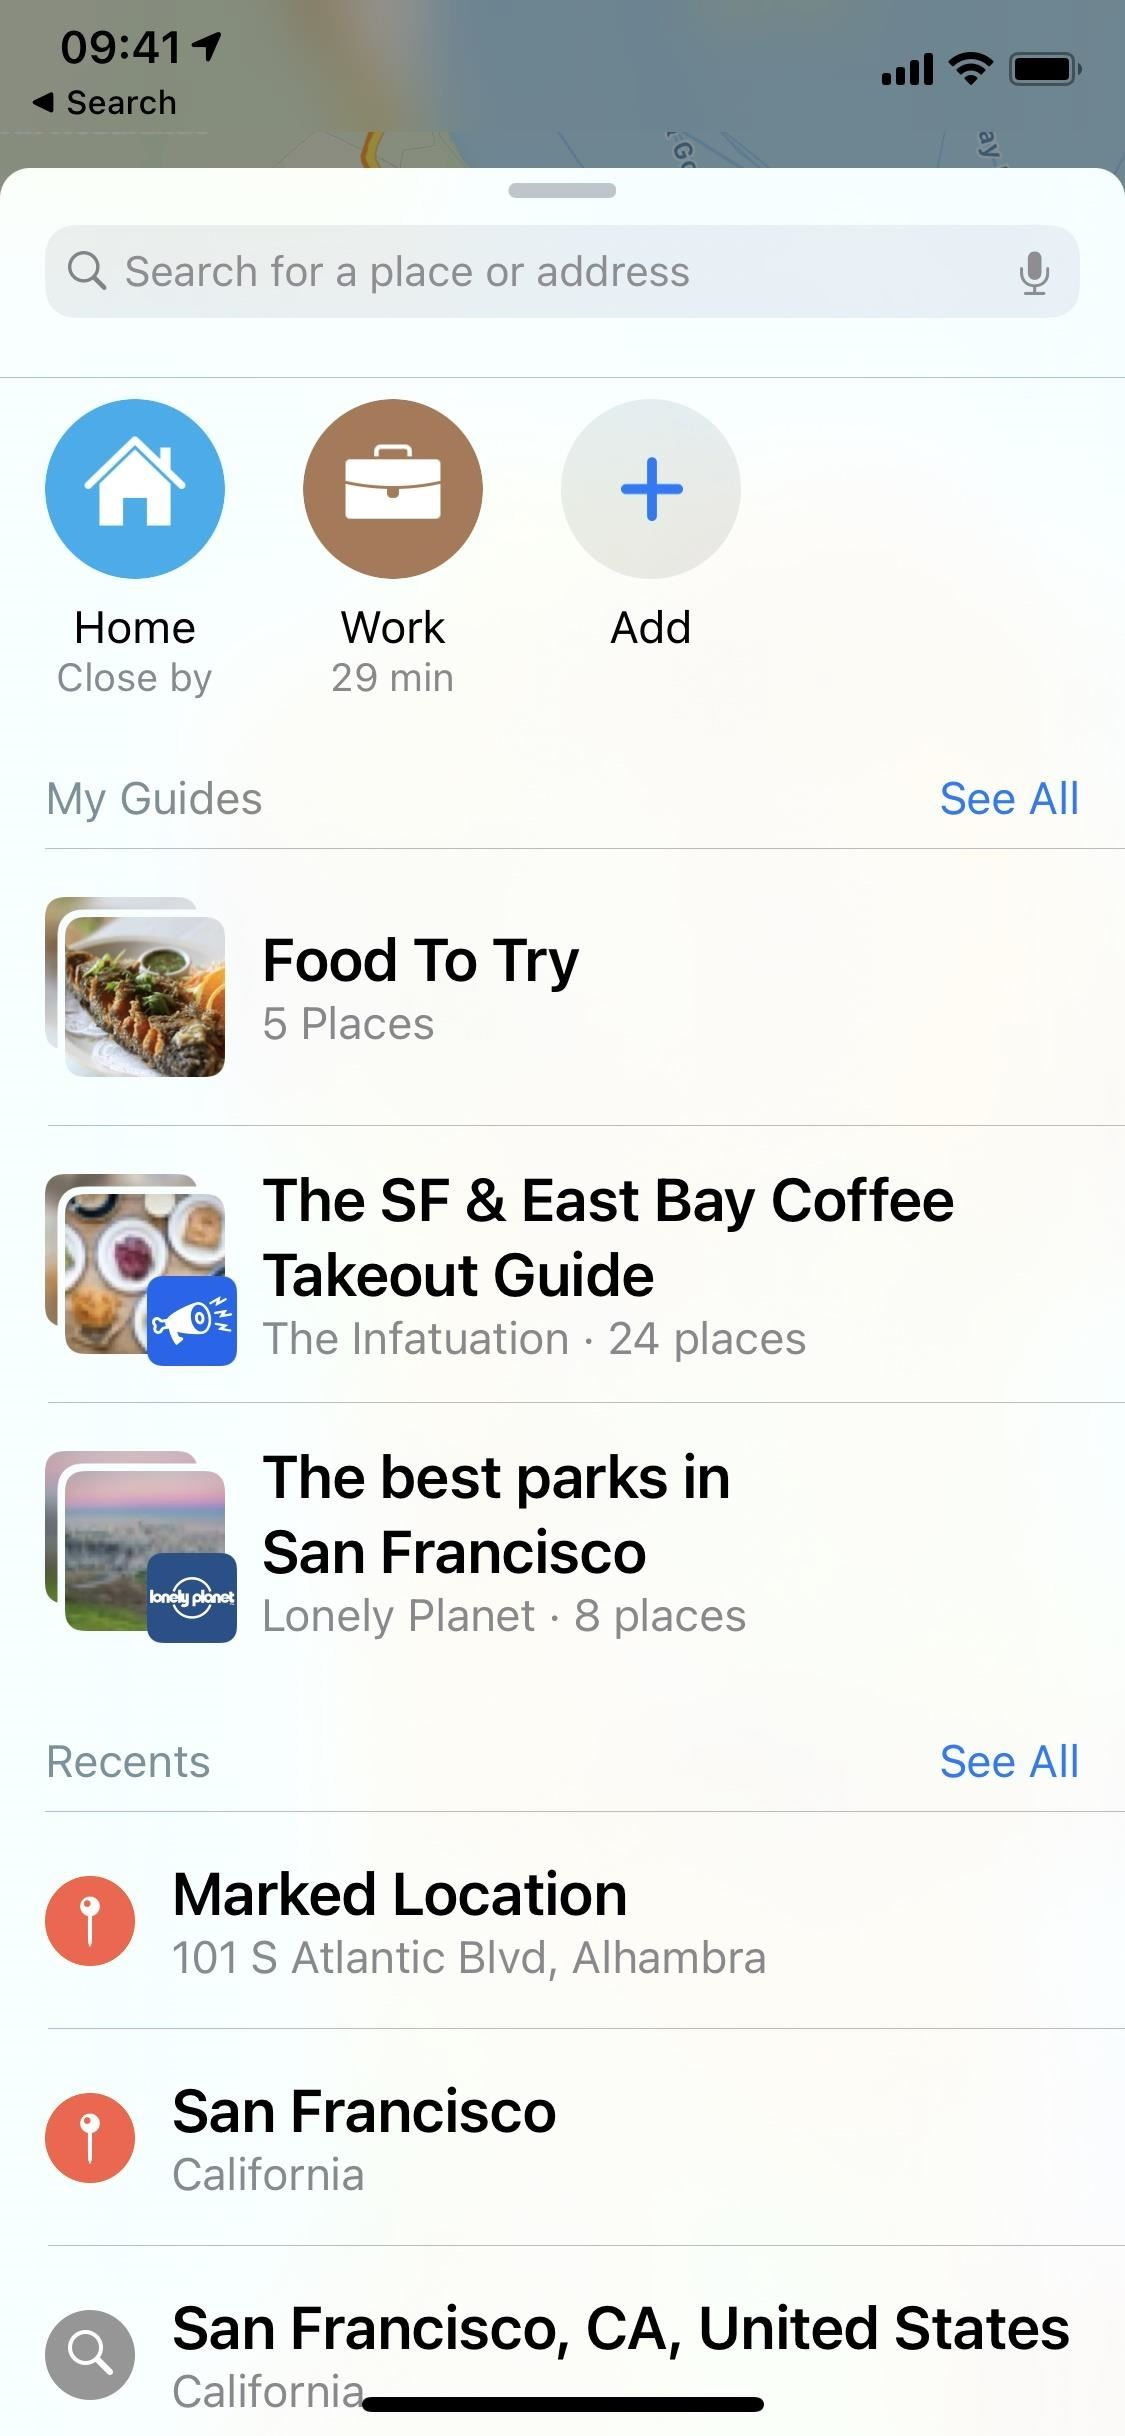 See related brand recommendations via curated city guides in iOS 14's Apple Maps